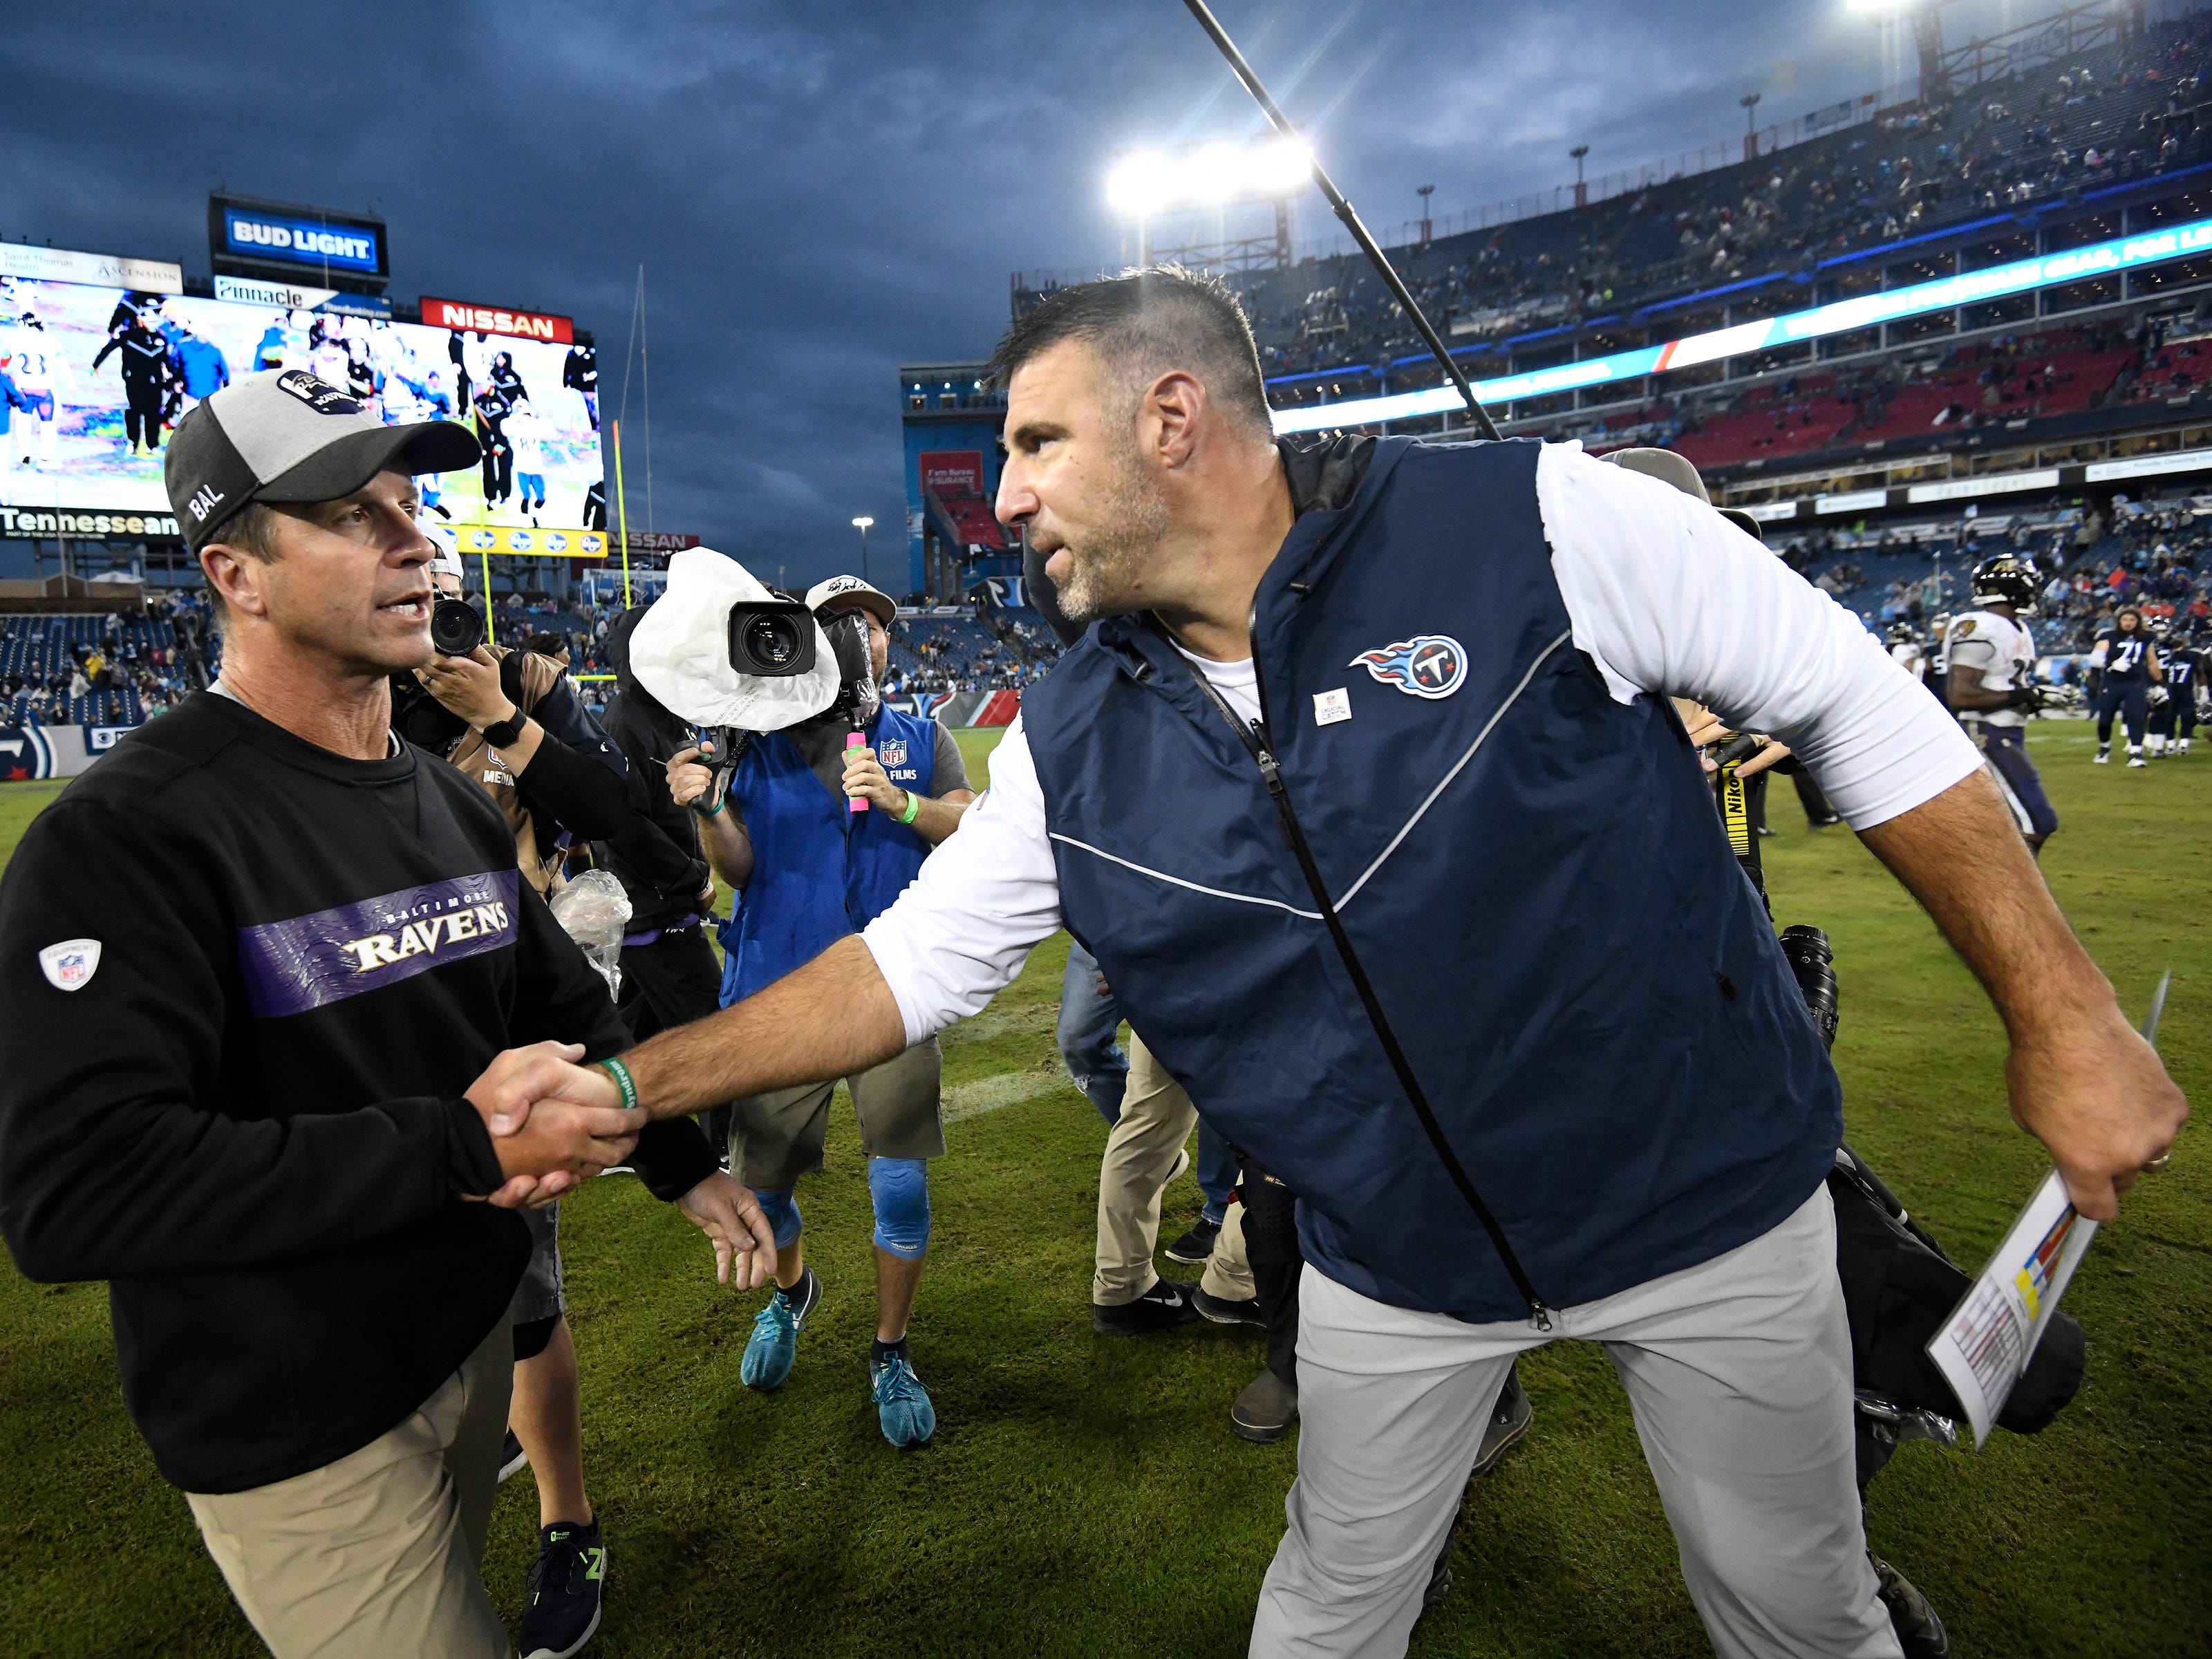 Titans head coach Mike Vrabel shakes hands with Ravens head coach John Harbaugh after the team's shutout loss at Nissan Stadium Sunday, Oct. 14, 2018, in Nashville, Tenn.